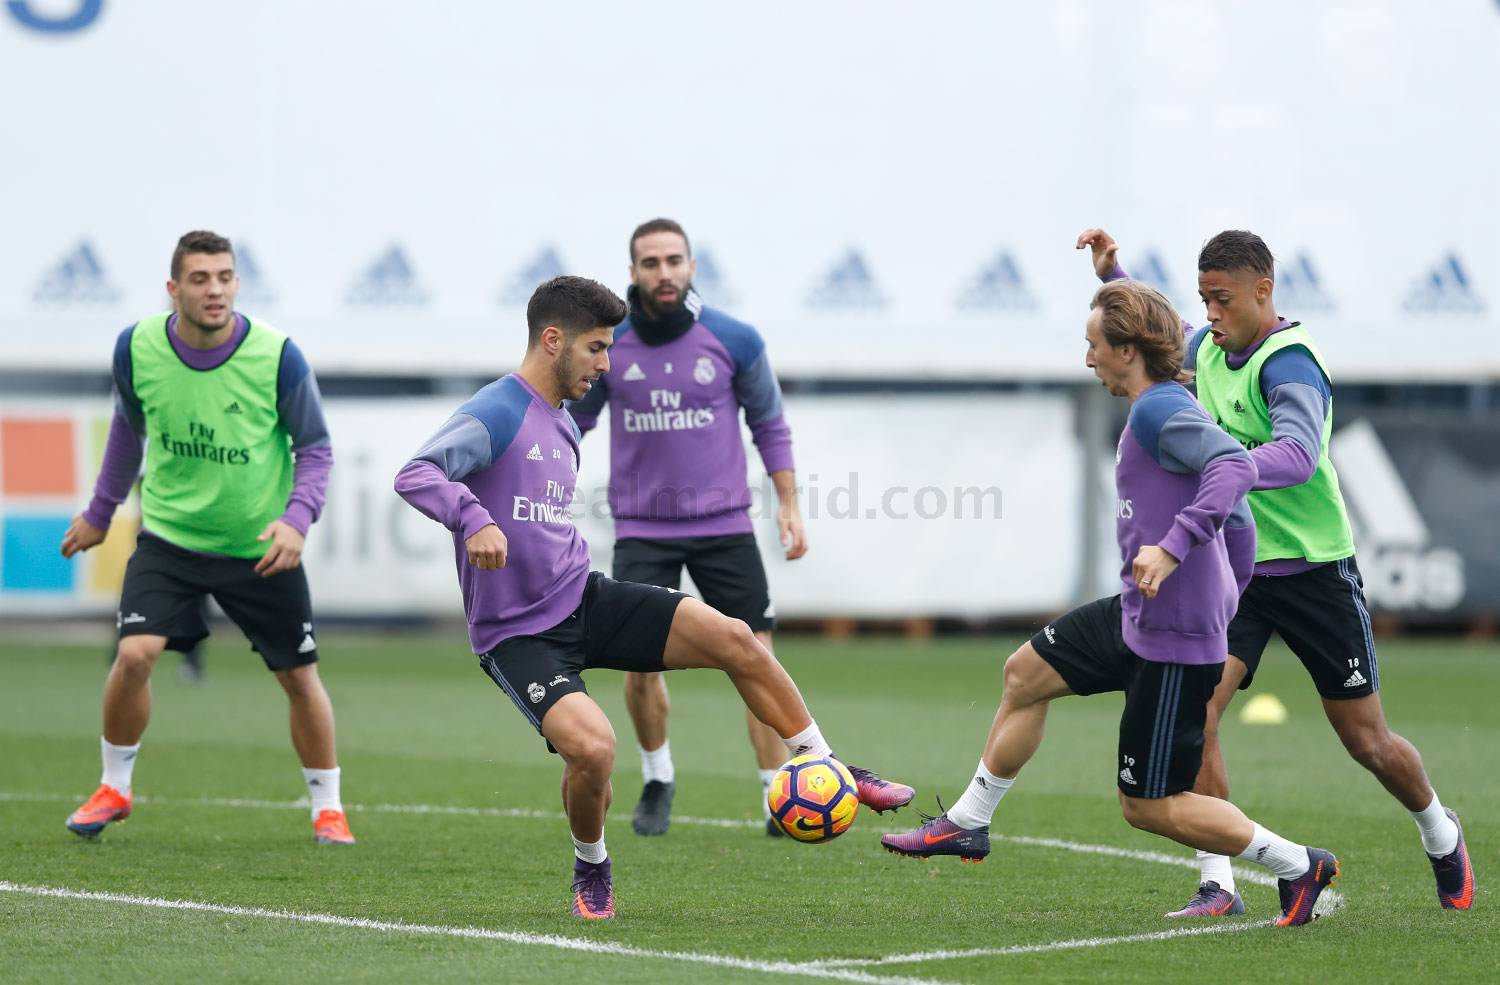 Real Madrid - Entrenamiento del Real Madrid - 05-11-2016